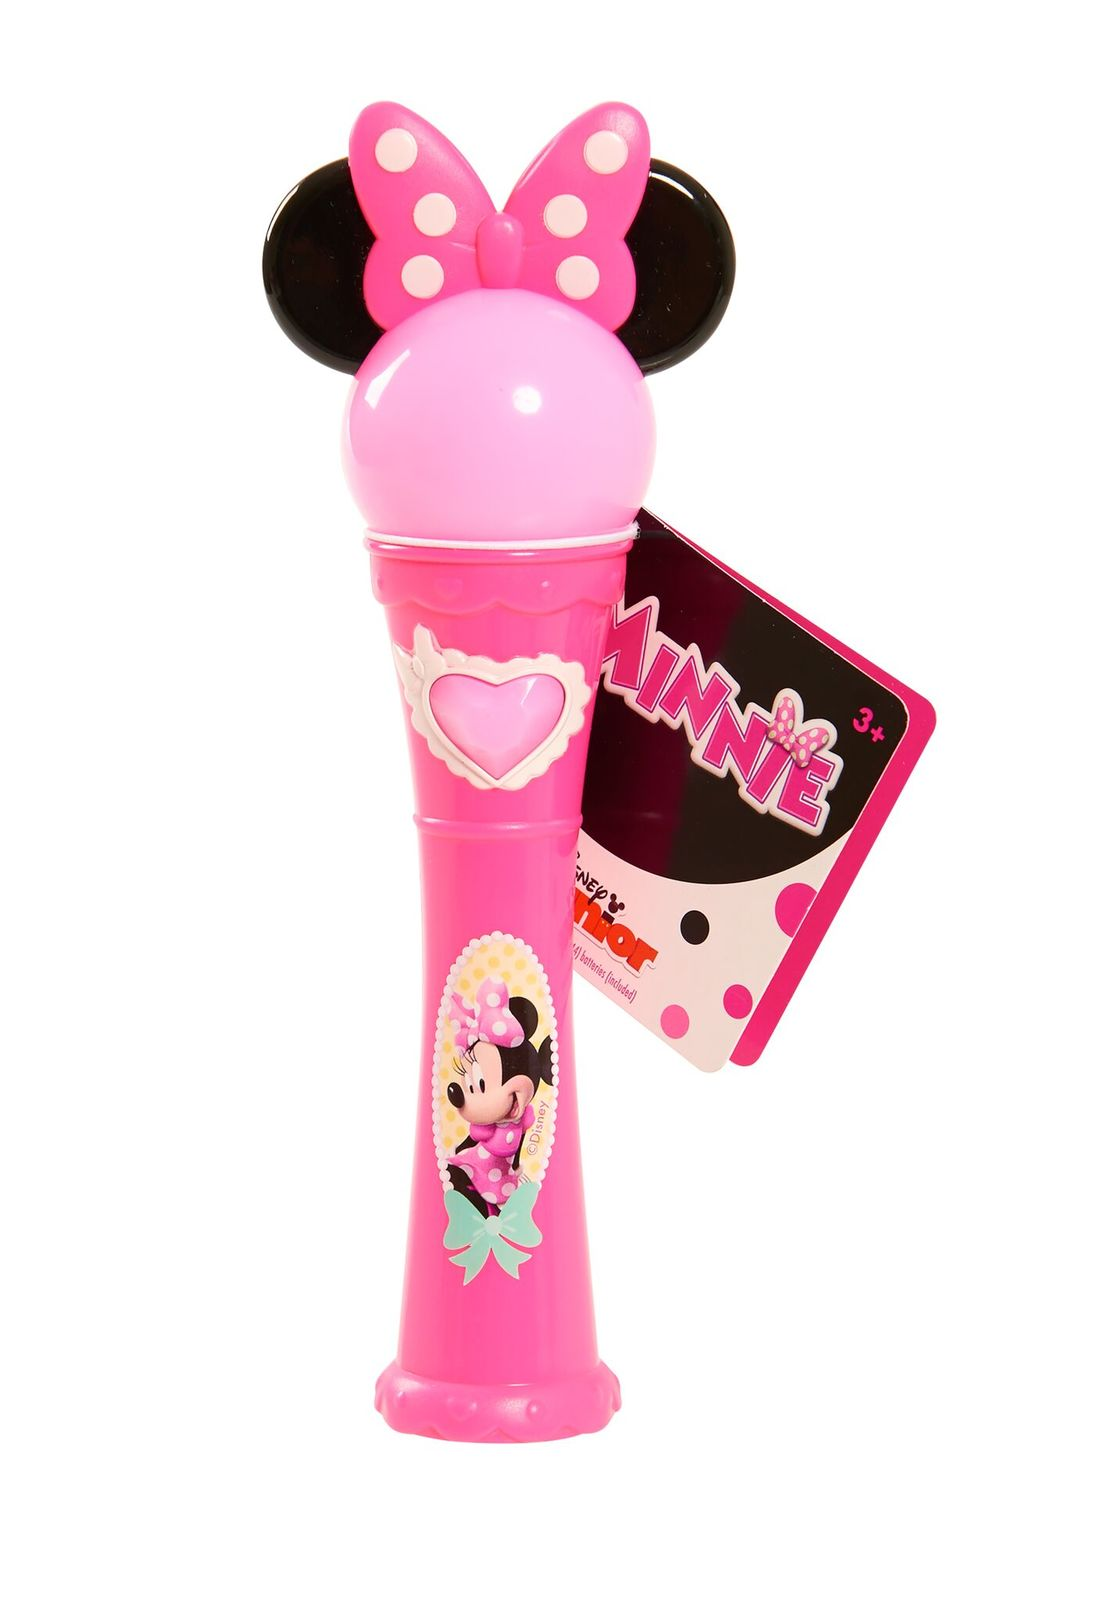 Disney: Minnie Bow-Tique - Musical Light Up Microphone image